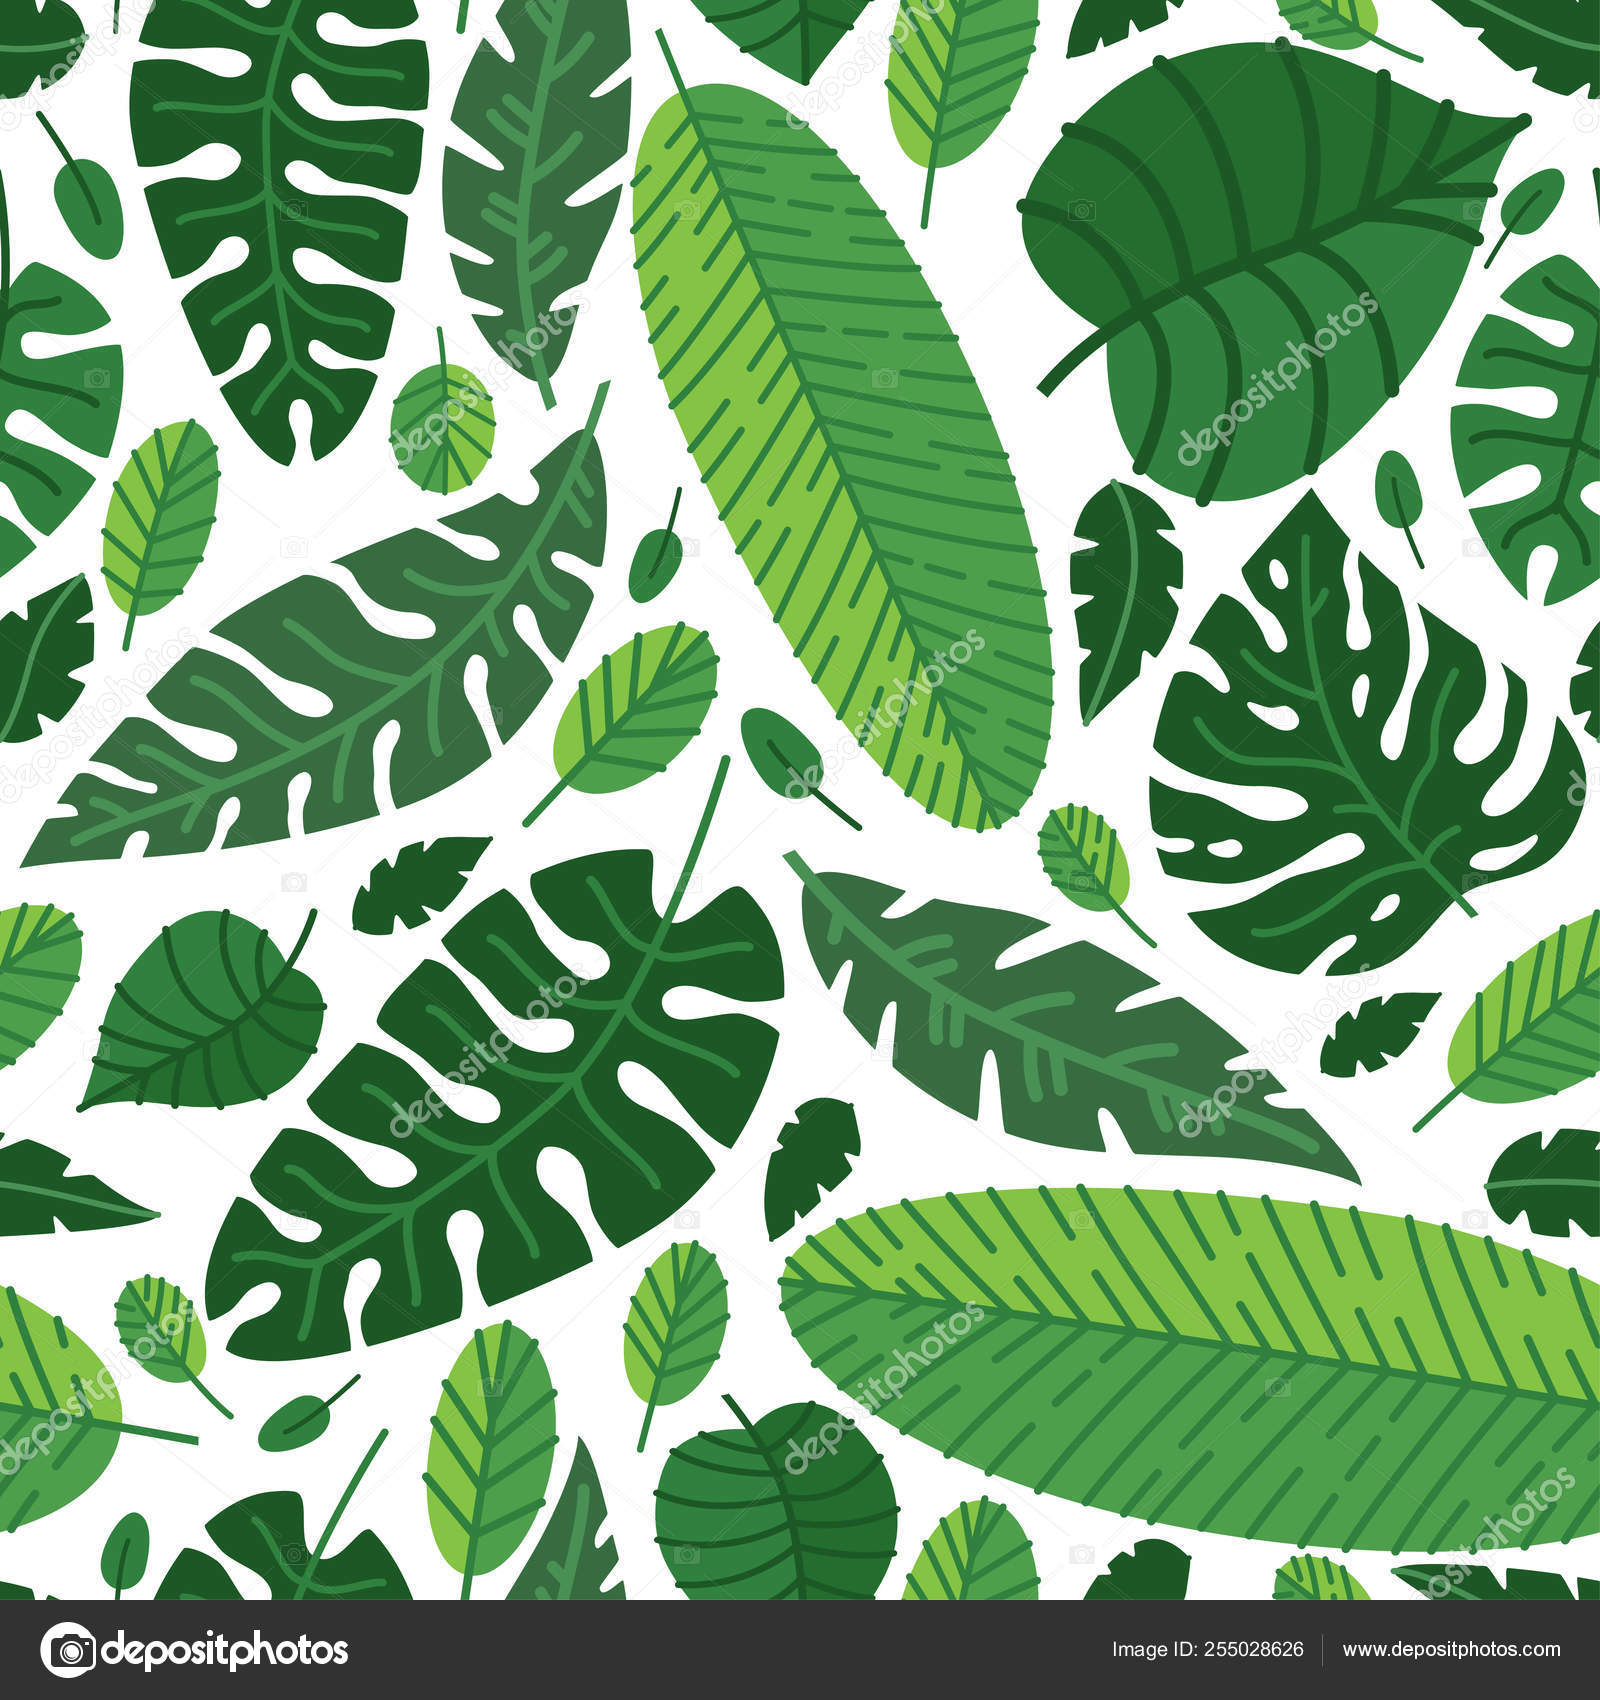 Tropical Leaves Vector Pattern Summer Equatorial Rainforest With Foliage Stock Vector C Pictulandra 255028626 Pikbest has 3796 tropical leaves design images templates for free. tropical leaves vector pattern summer equatorial rainforest with foliage stock vector c pictulandra 255028626